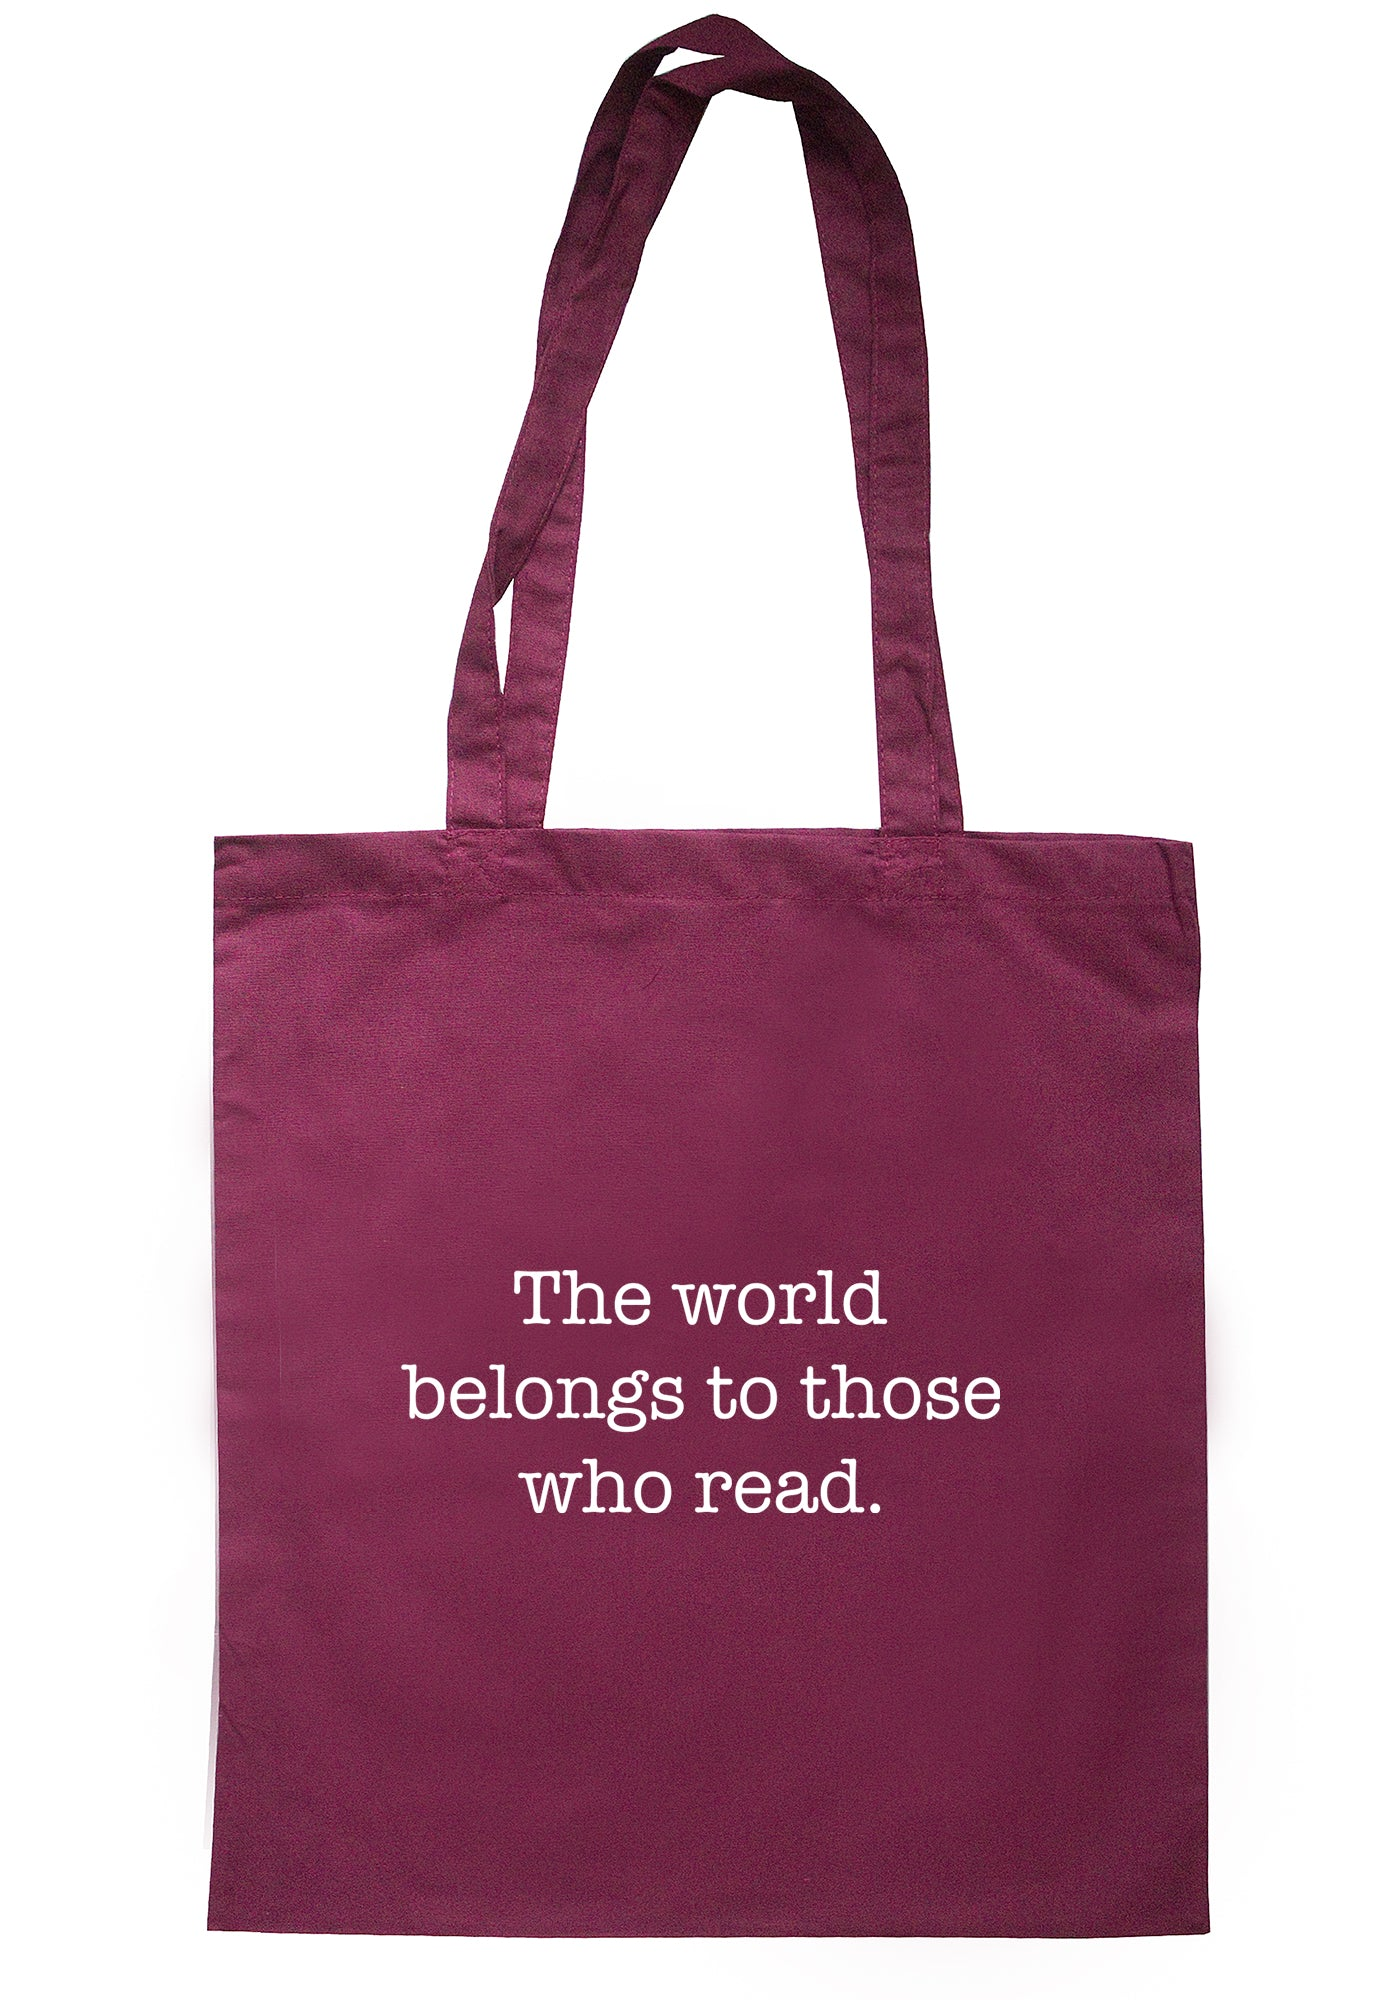 The World Belongs To Those Who Read Tote Bag S1090 - Illustrated Identity Ltd.